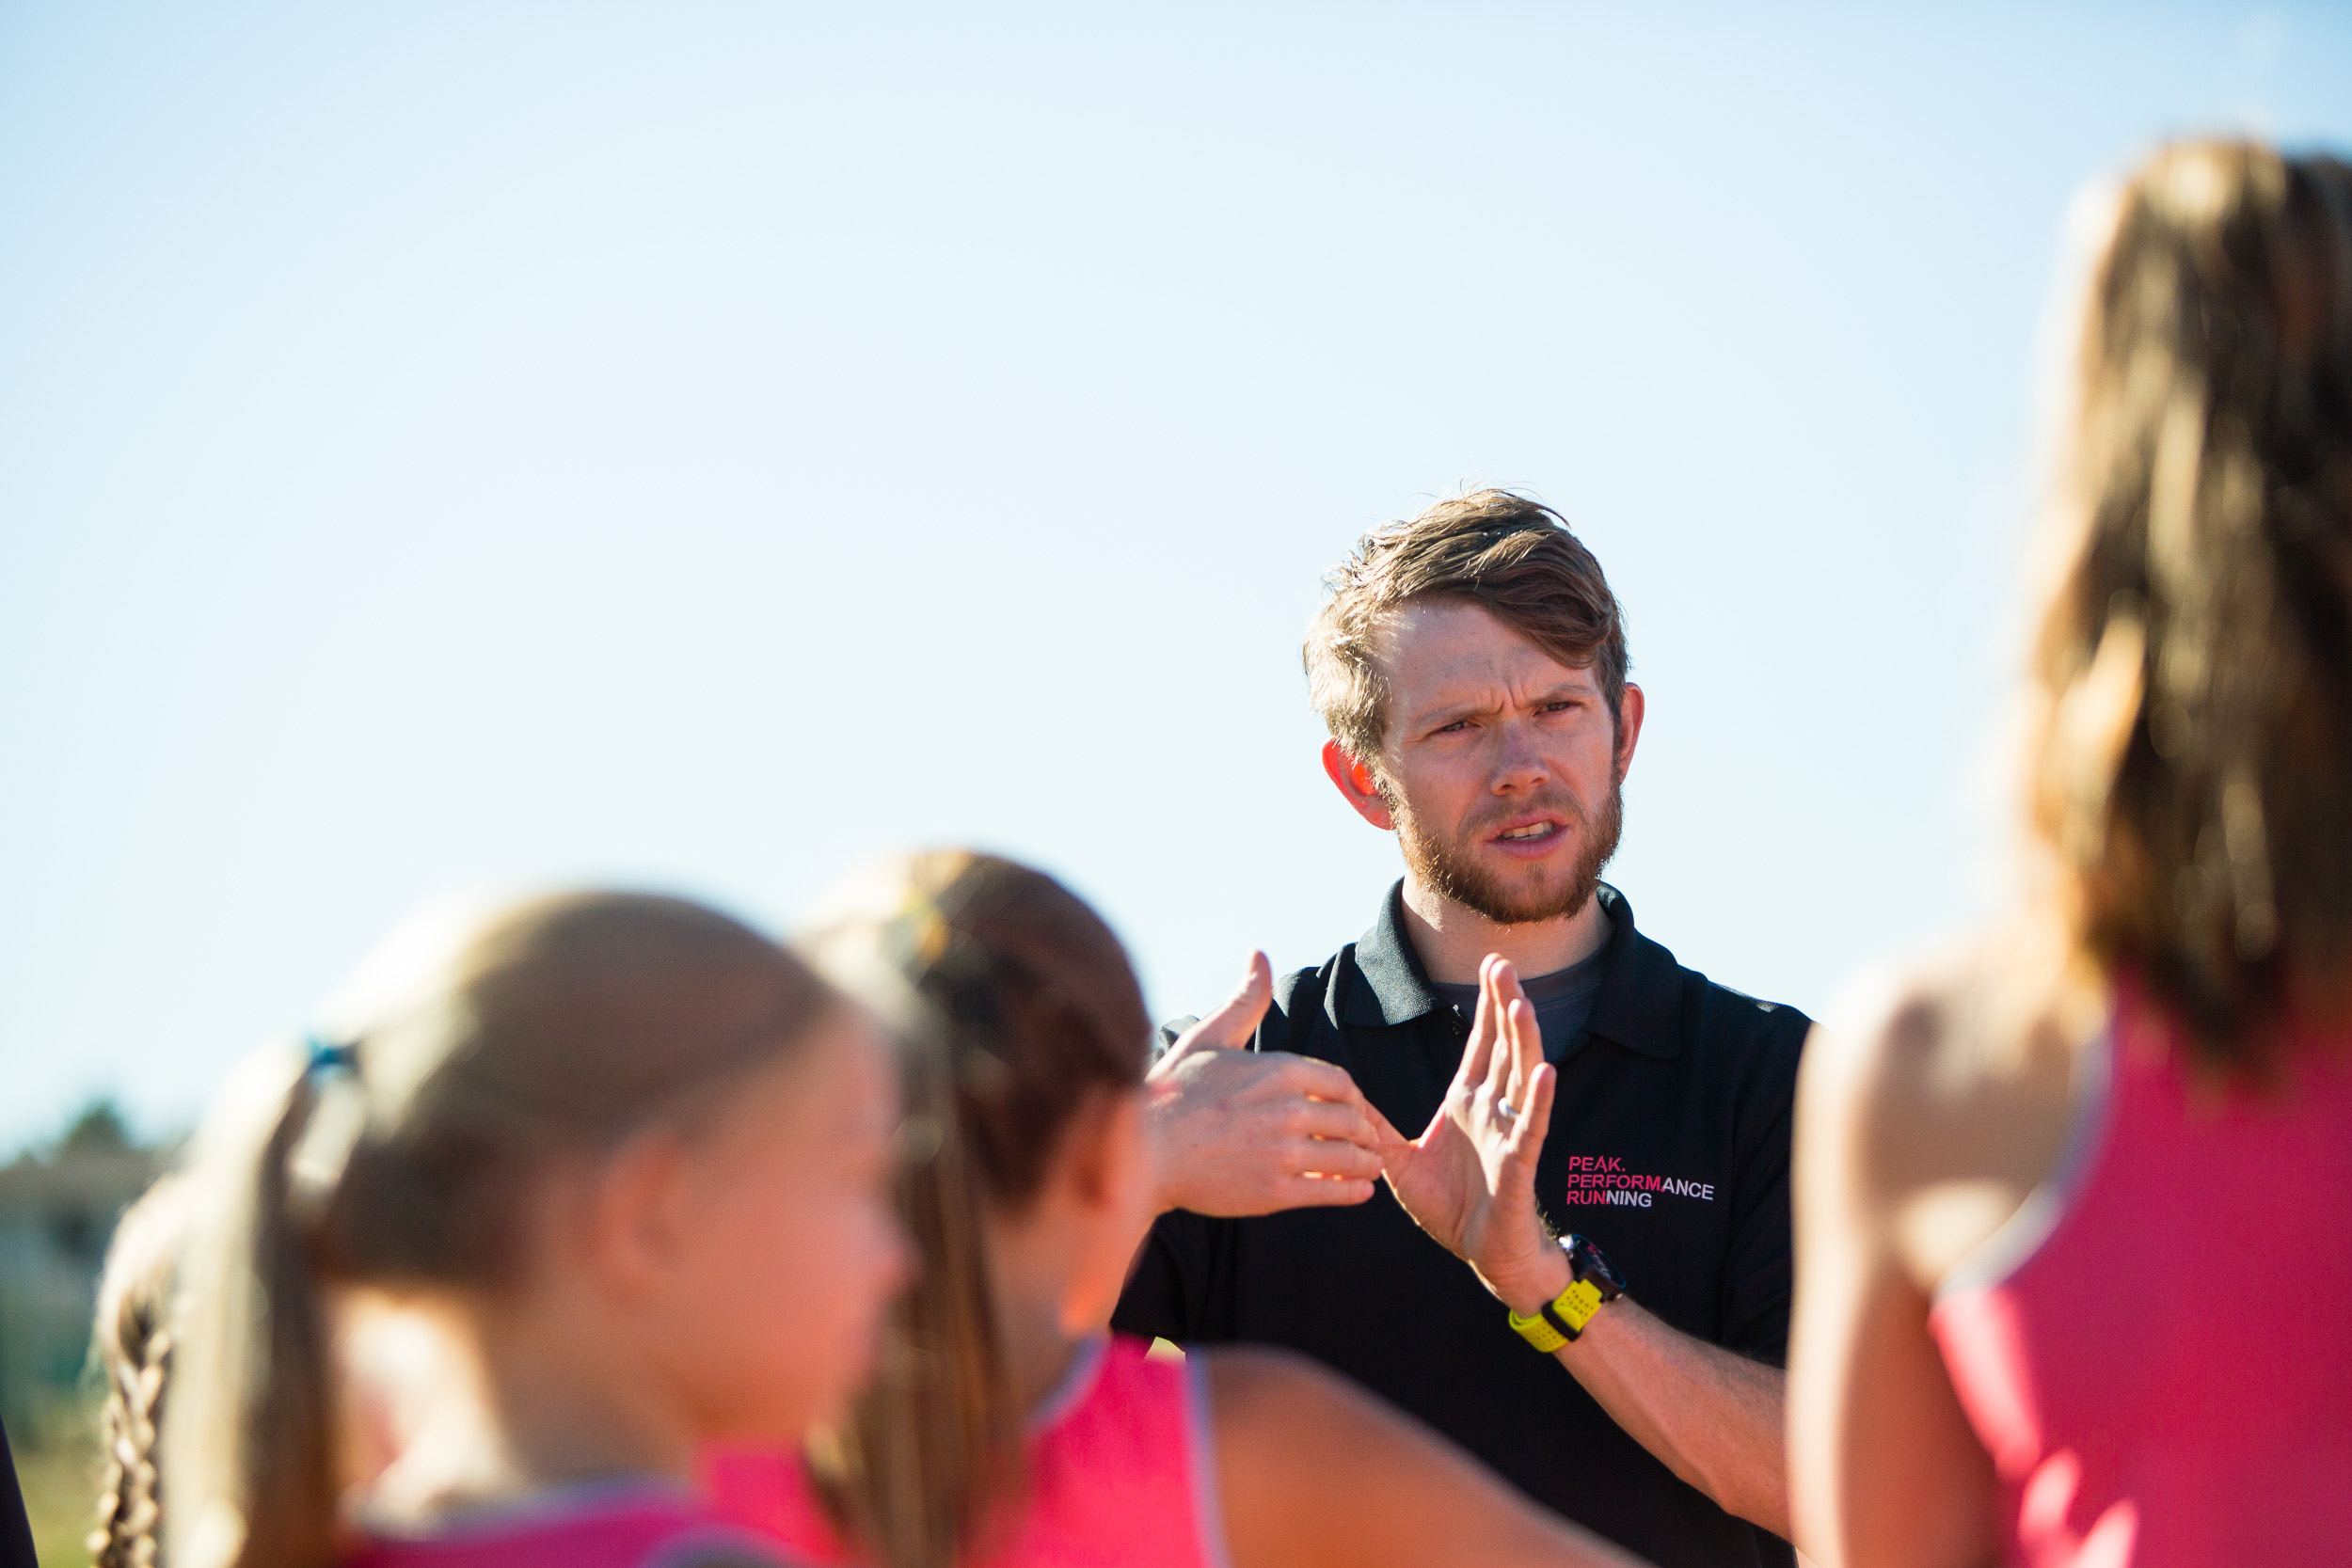 About - Find out about Coach Andrew Simmons,his mission, methods, and the results of years of coaching